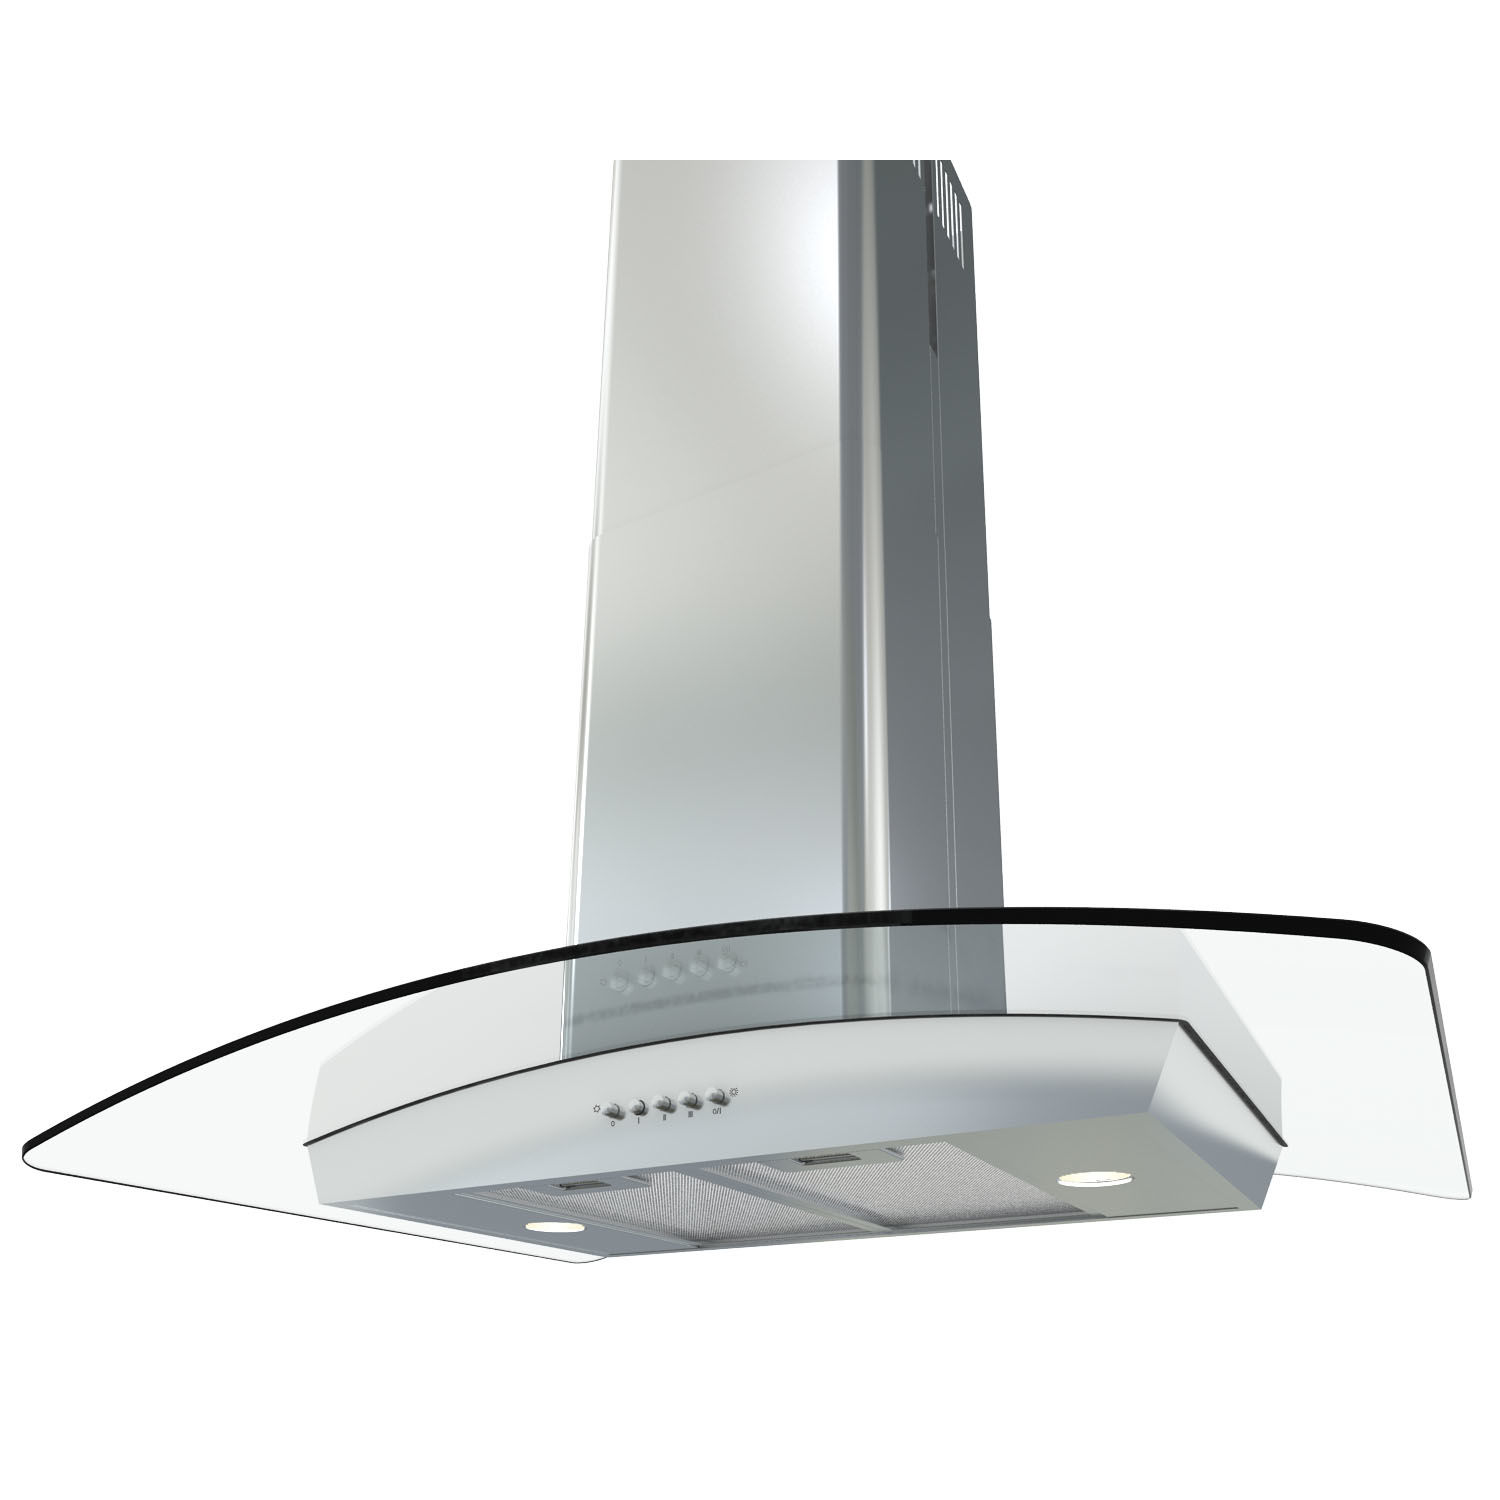 Shop All Miseno Island Range Hoods!